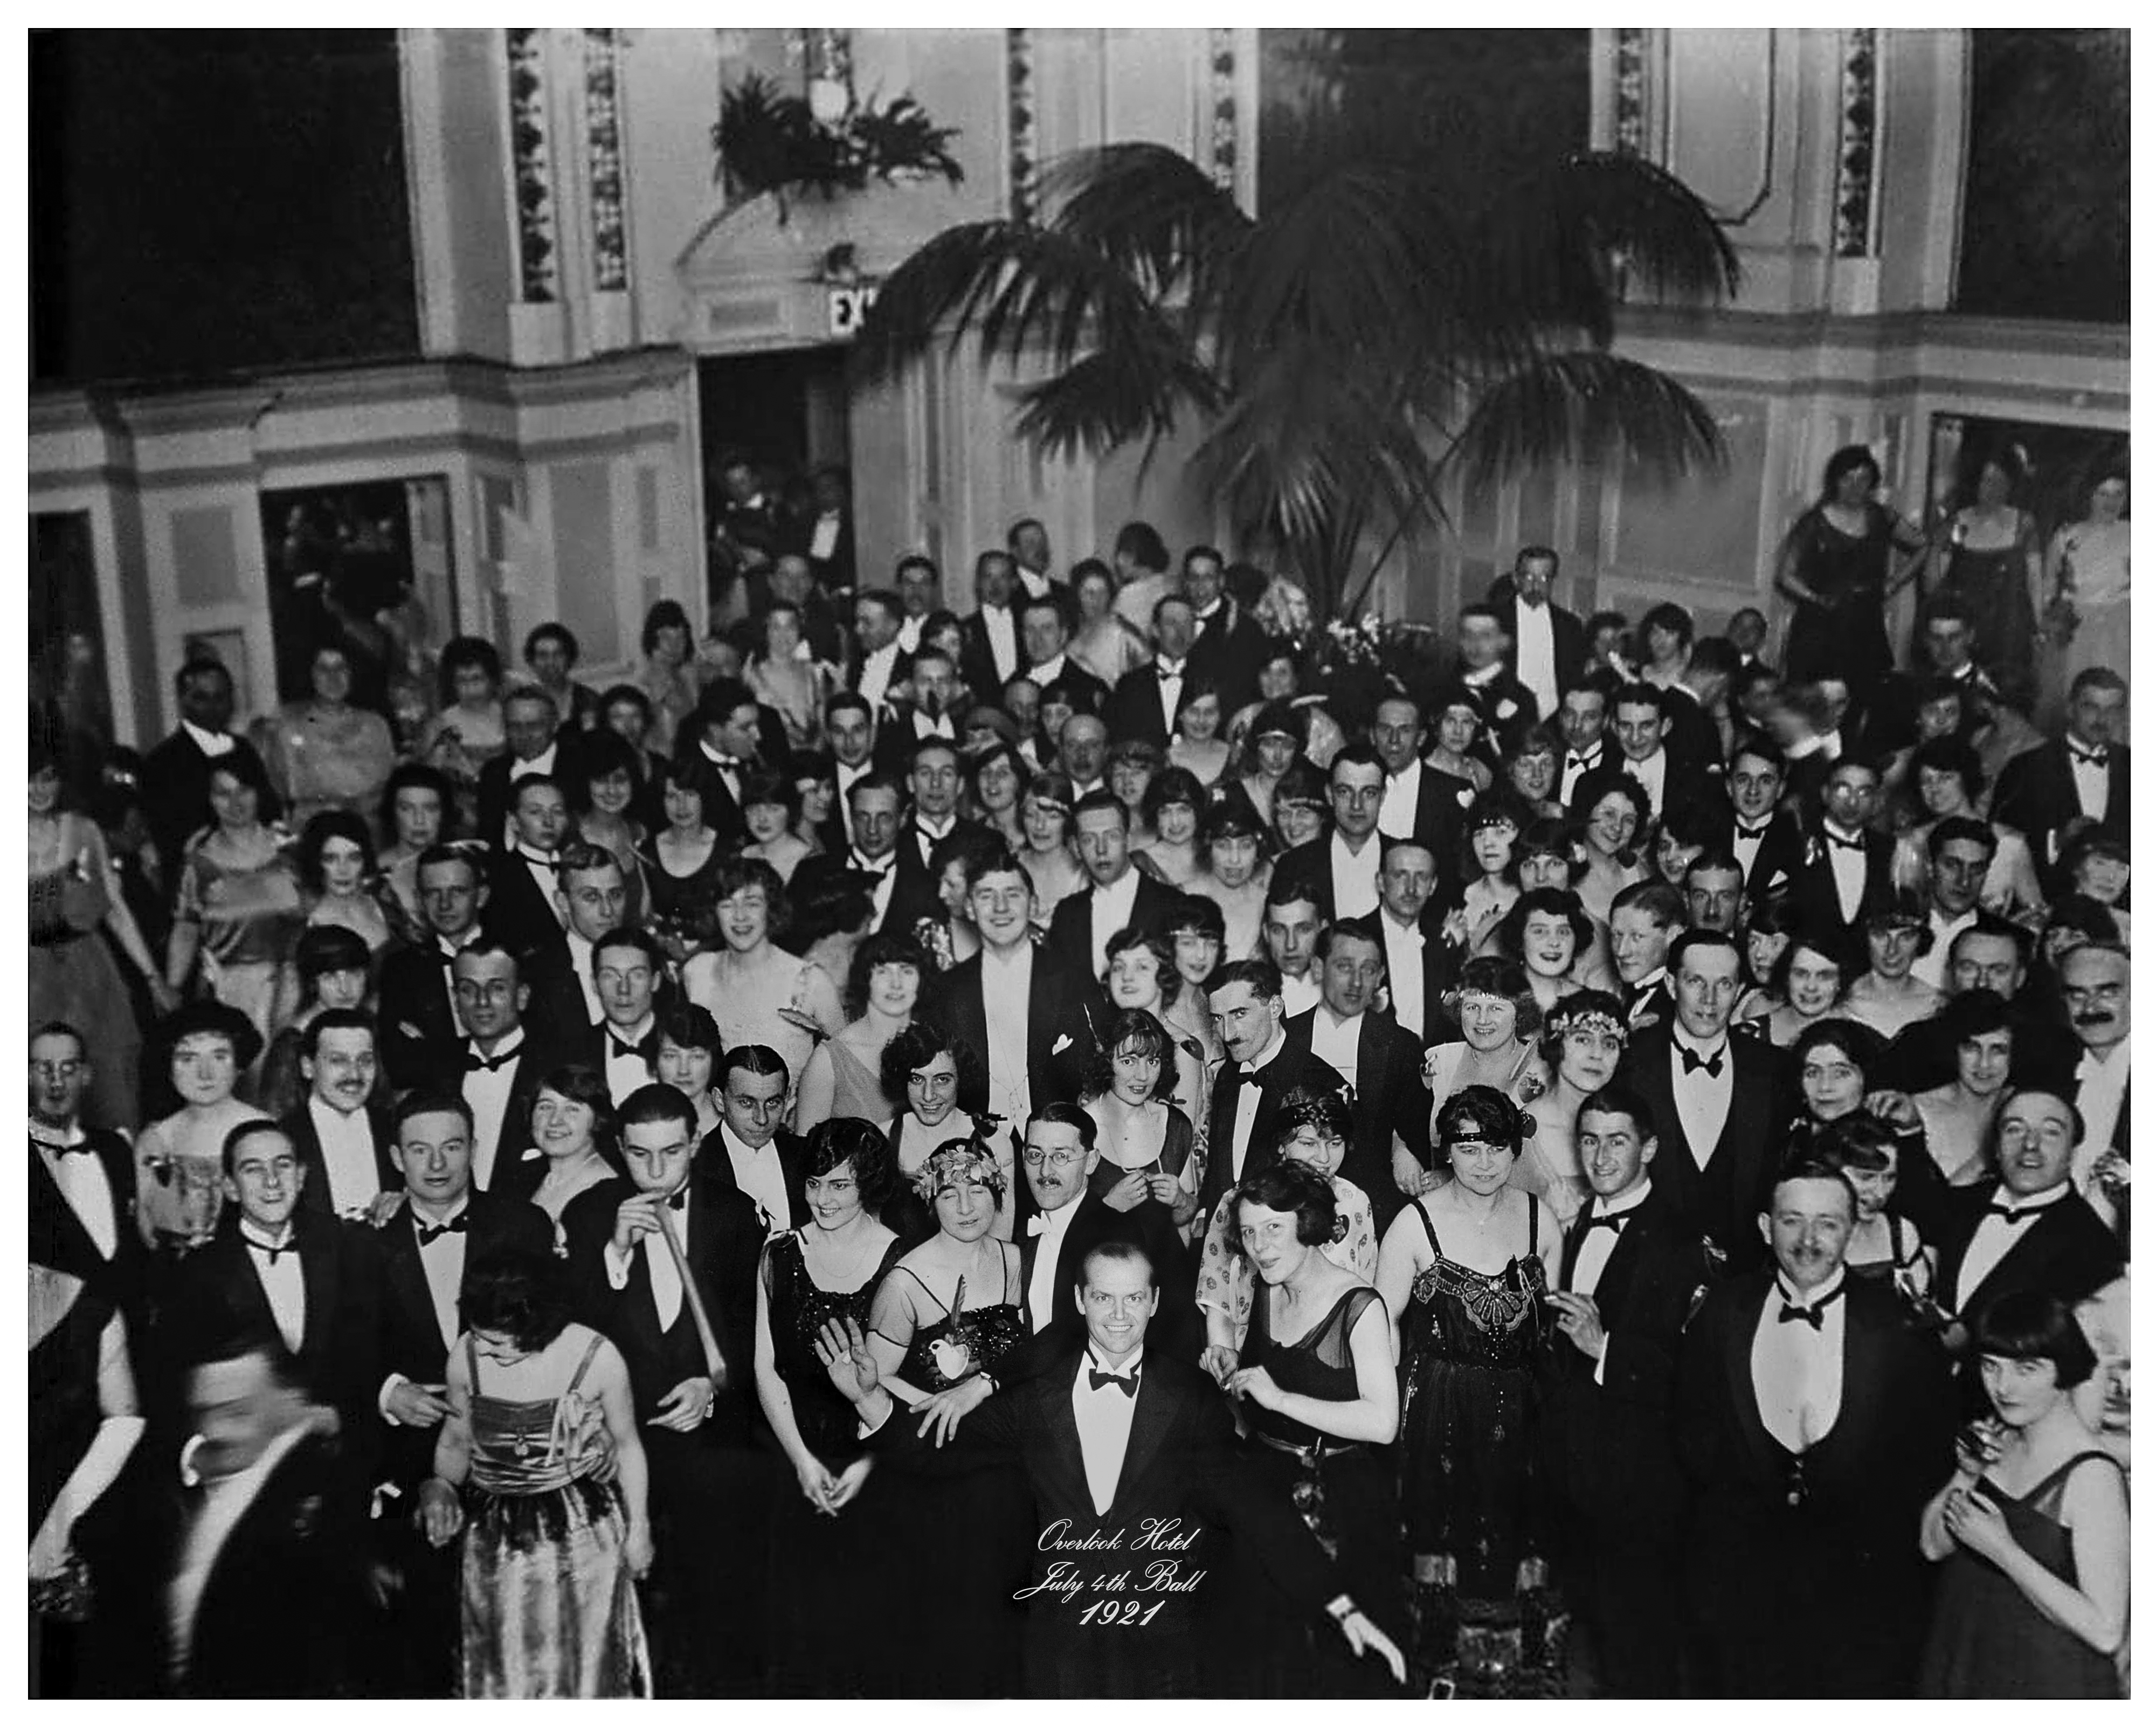 The Shining — Overlook Hotel Staff